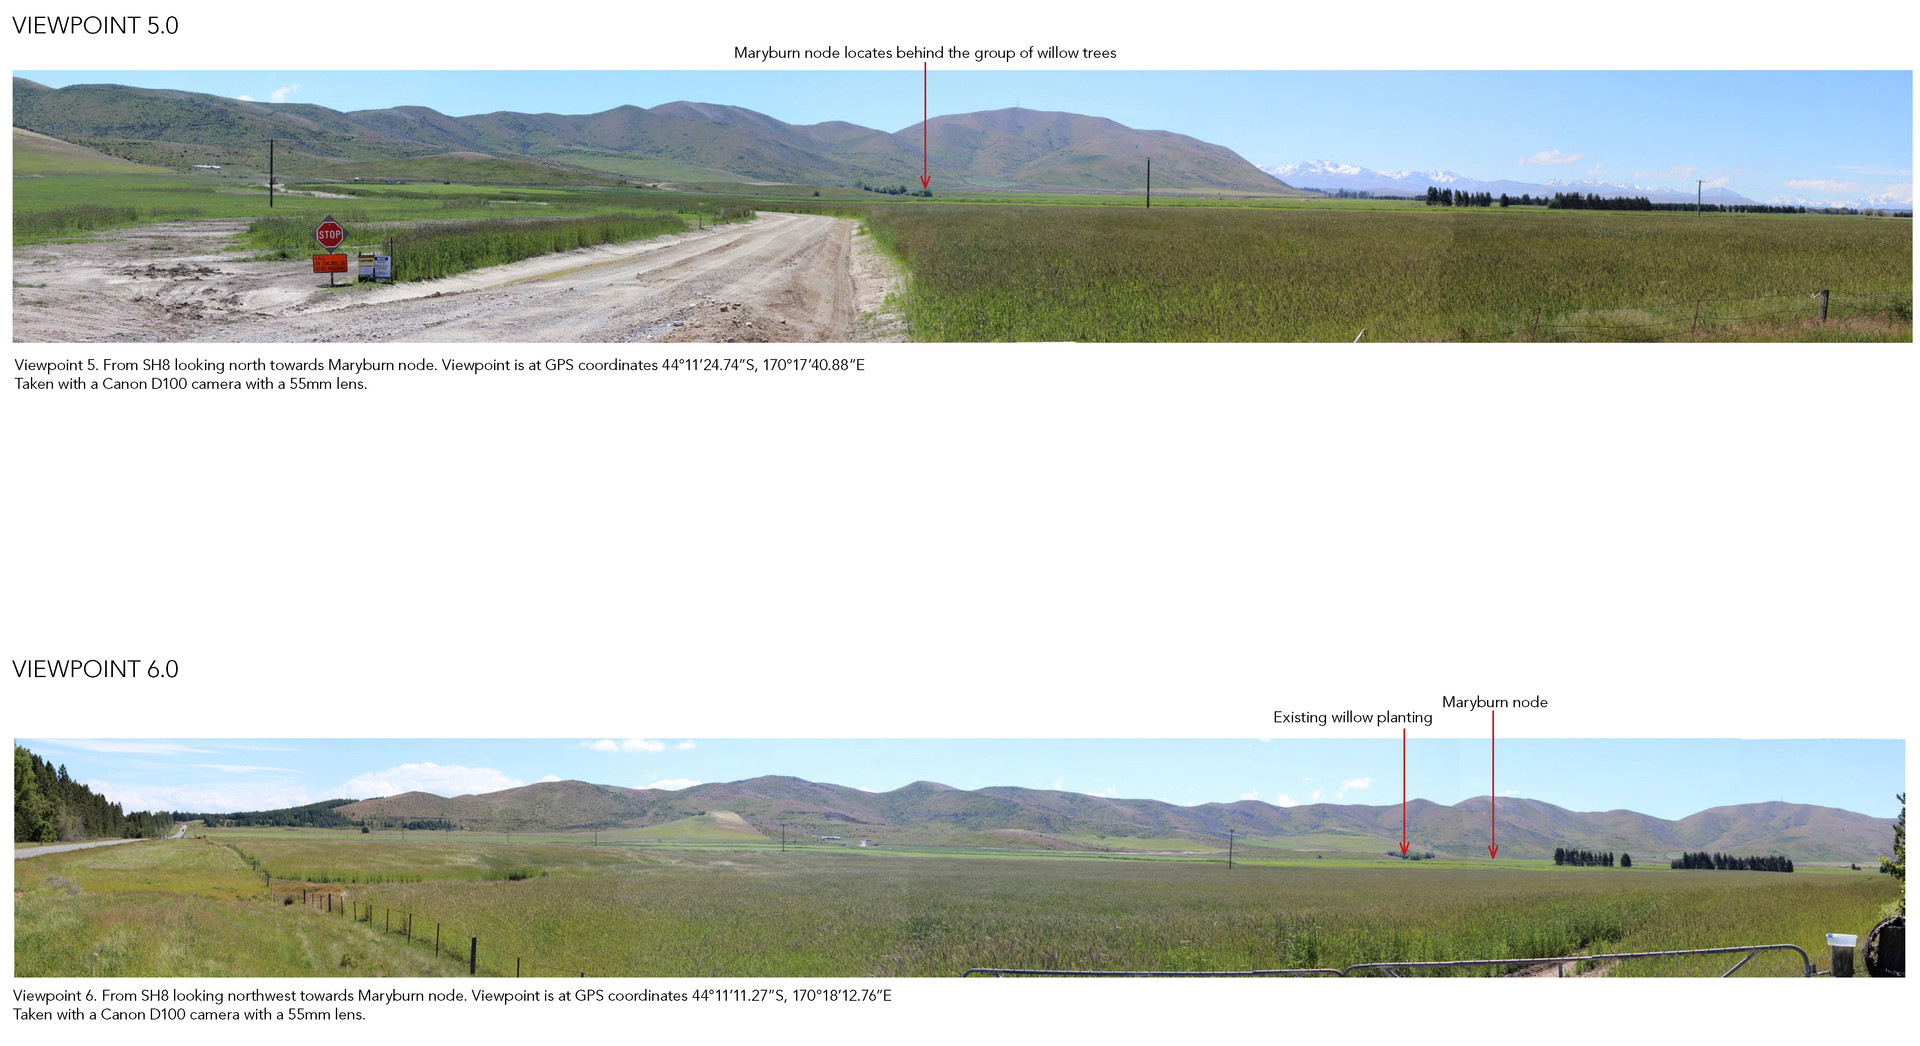 0820_Simons Pass_Node A & Mary Range node_Graphic supplement_Page_07_1.JPG